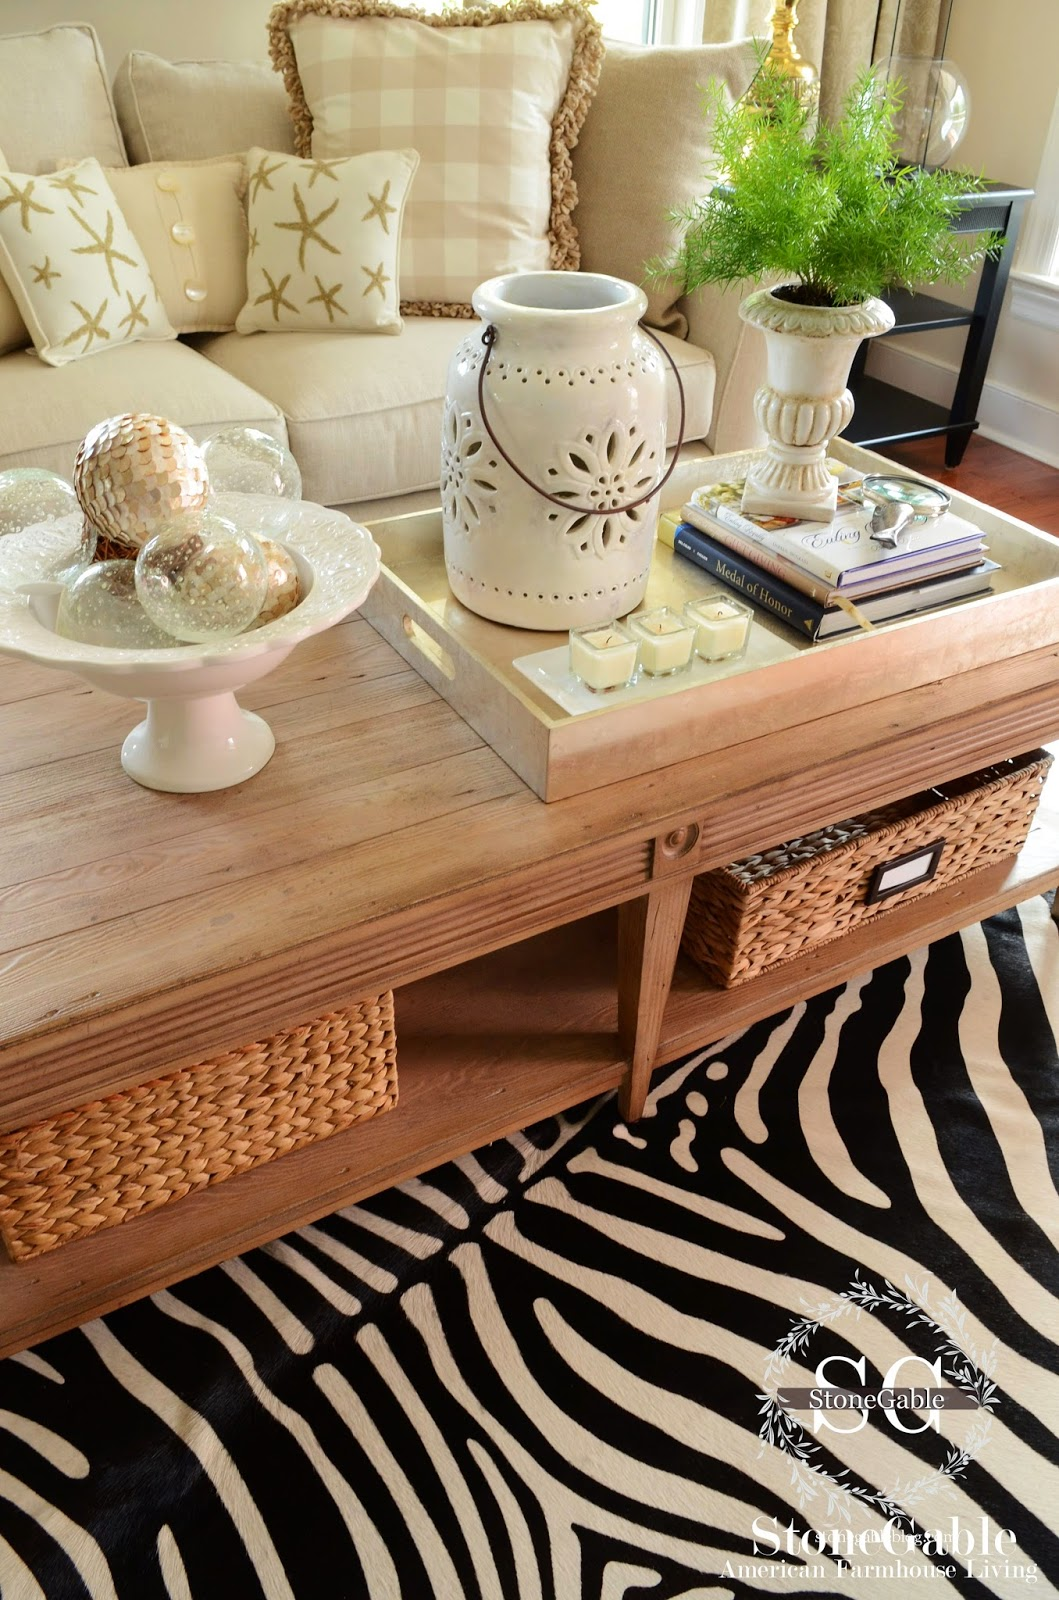 5 TIPS TO STYLE A COFFEE TABLE LIKE A PROStoneGable